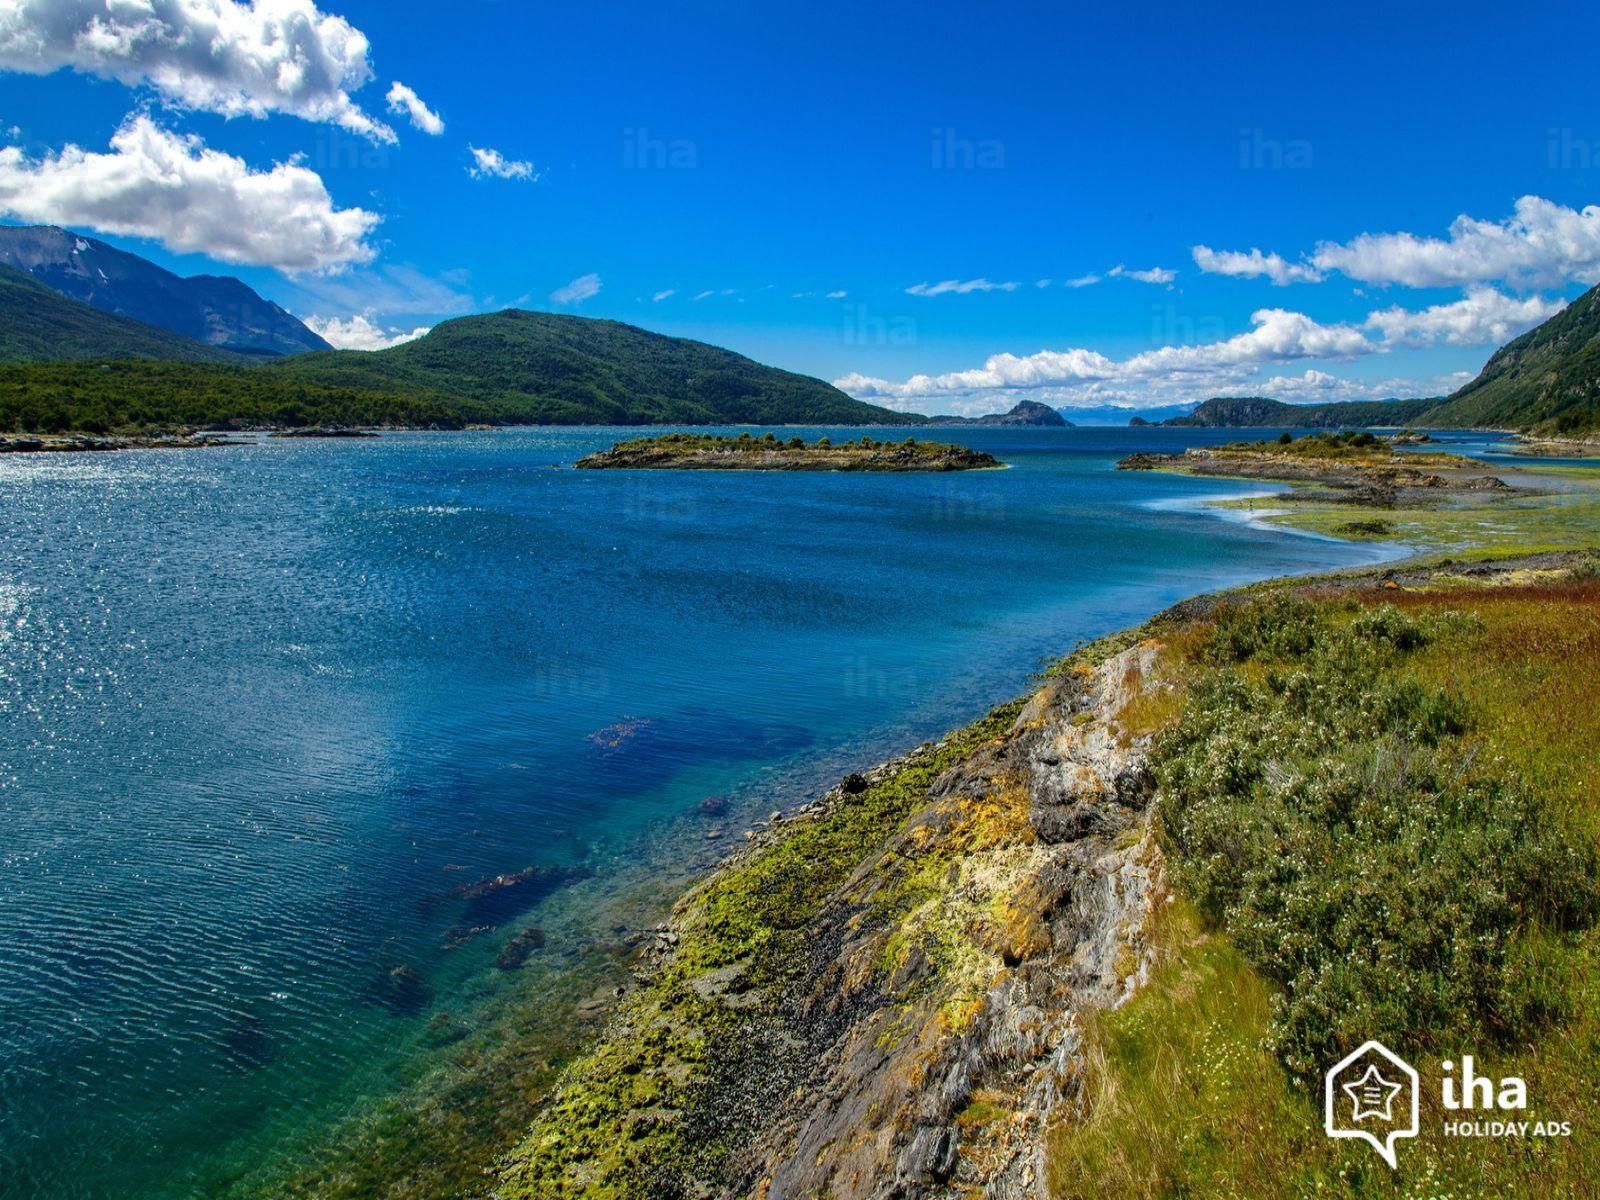 Province of Tierra del Fuego rentals for your holidays with IHA